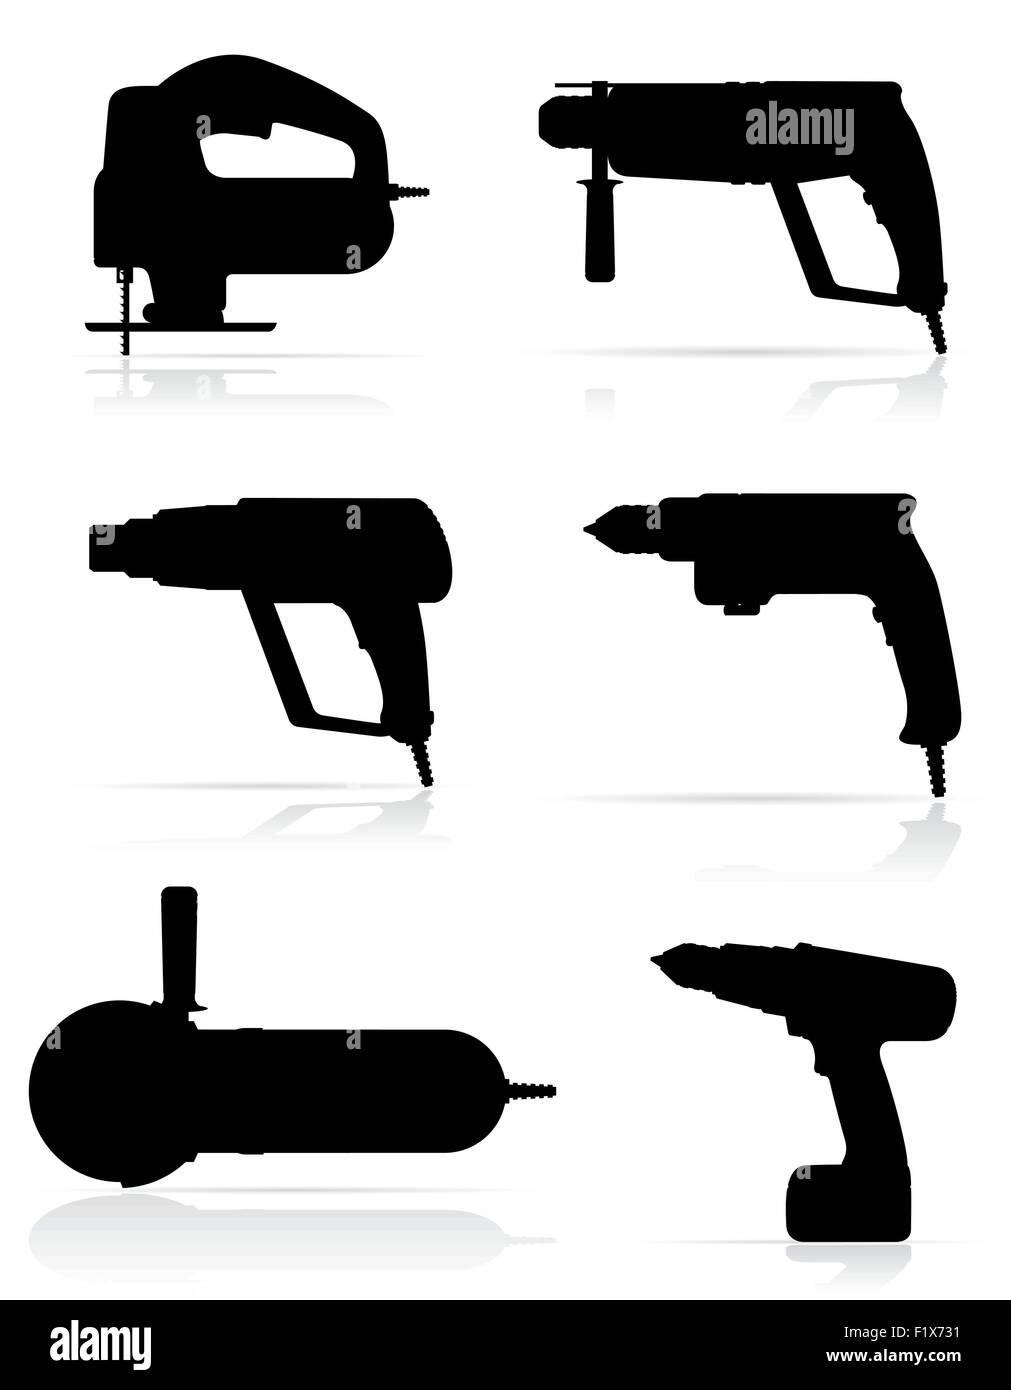 electric tools black silhouette set icons vector illustration isolated on white background - Stock Image